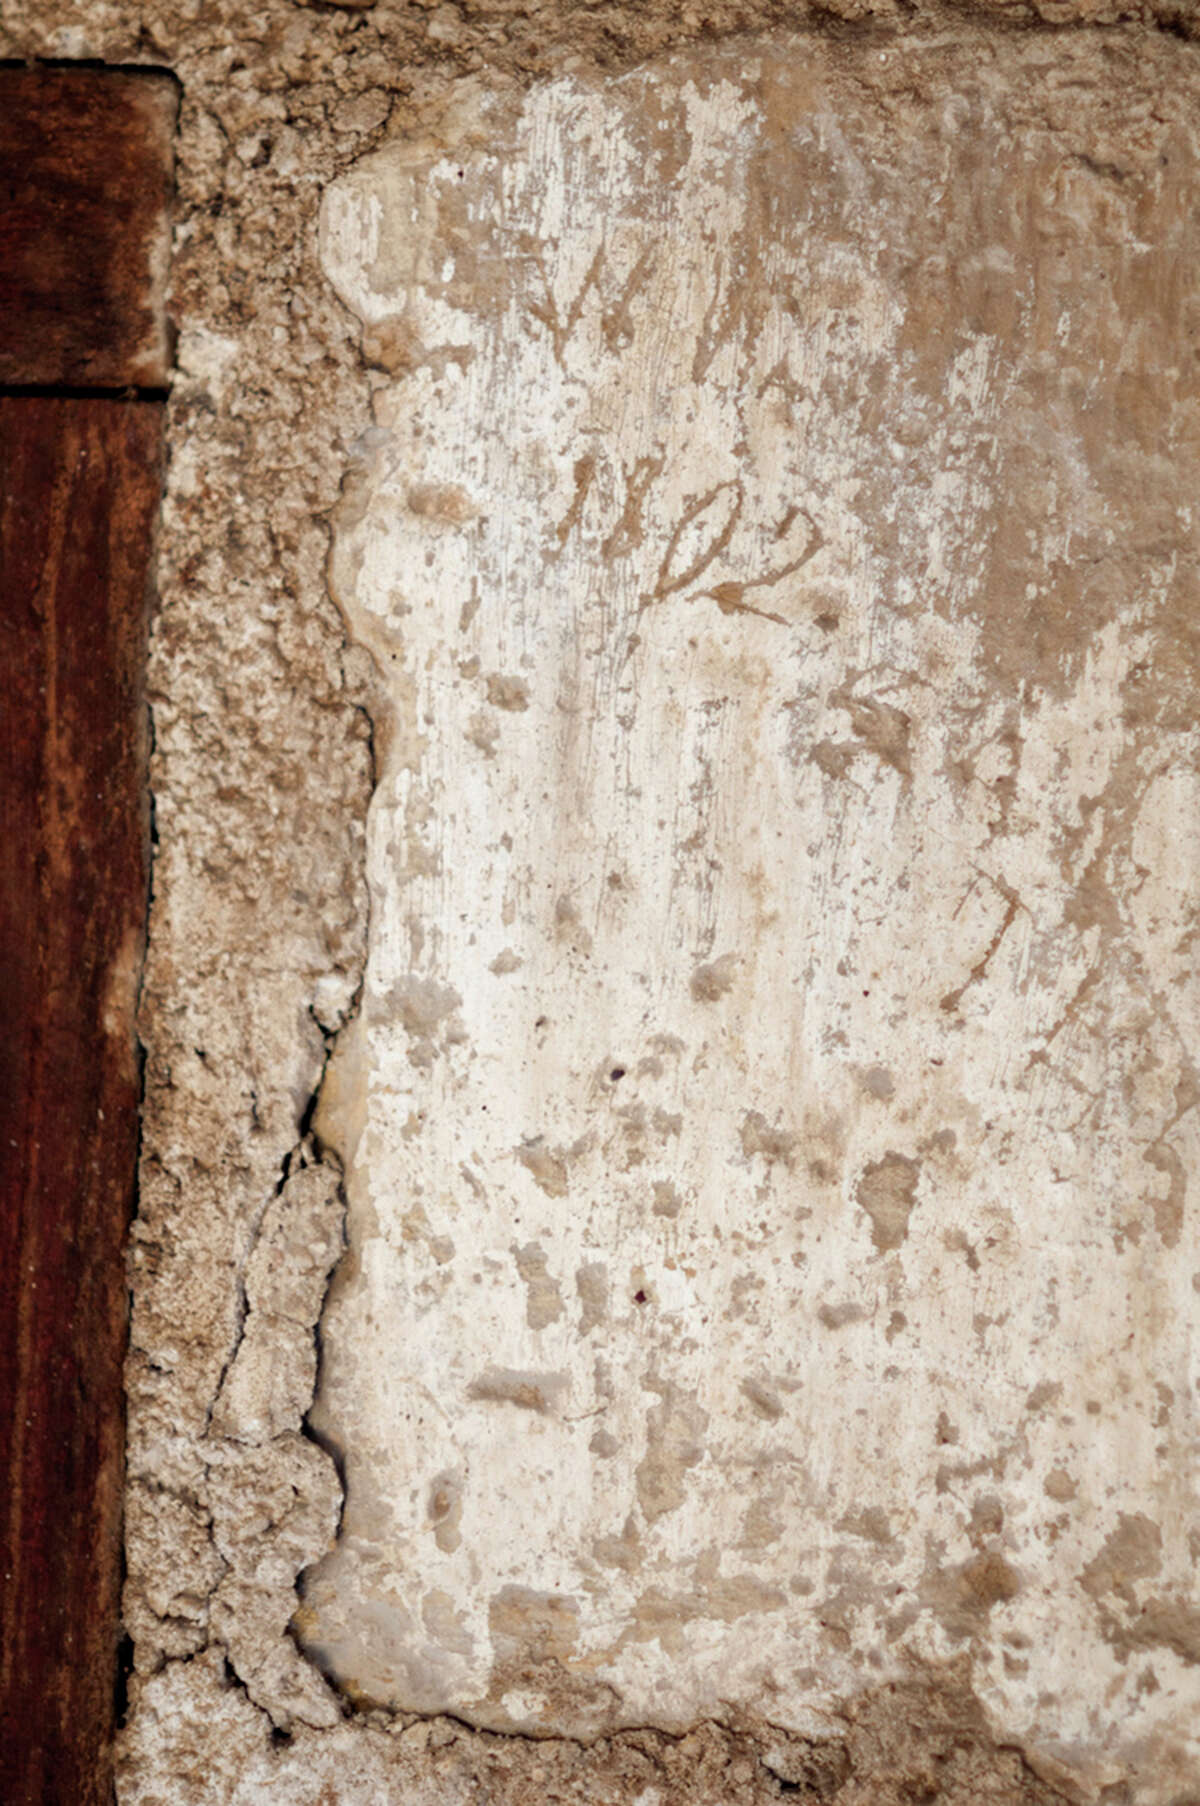 The date 1802 was etched into the wall above the chapel's main doorway.